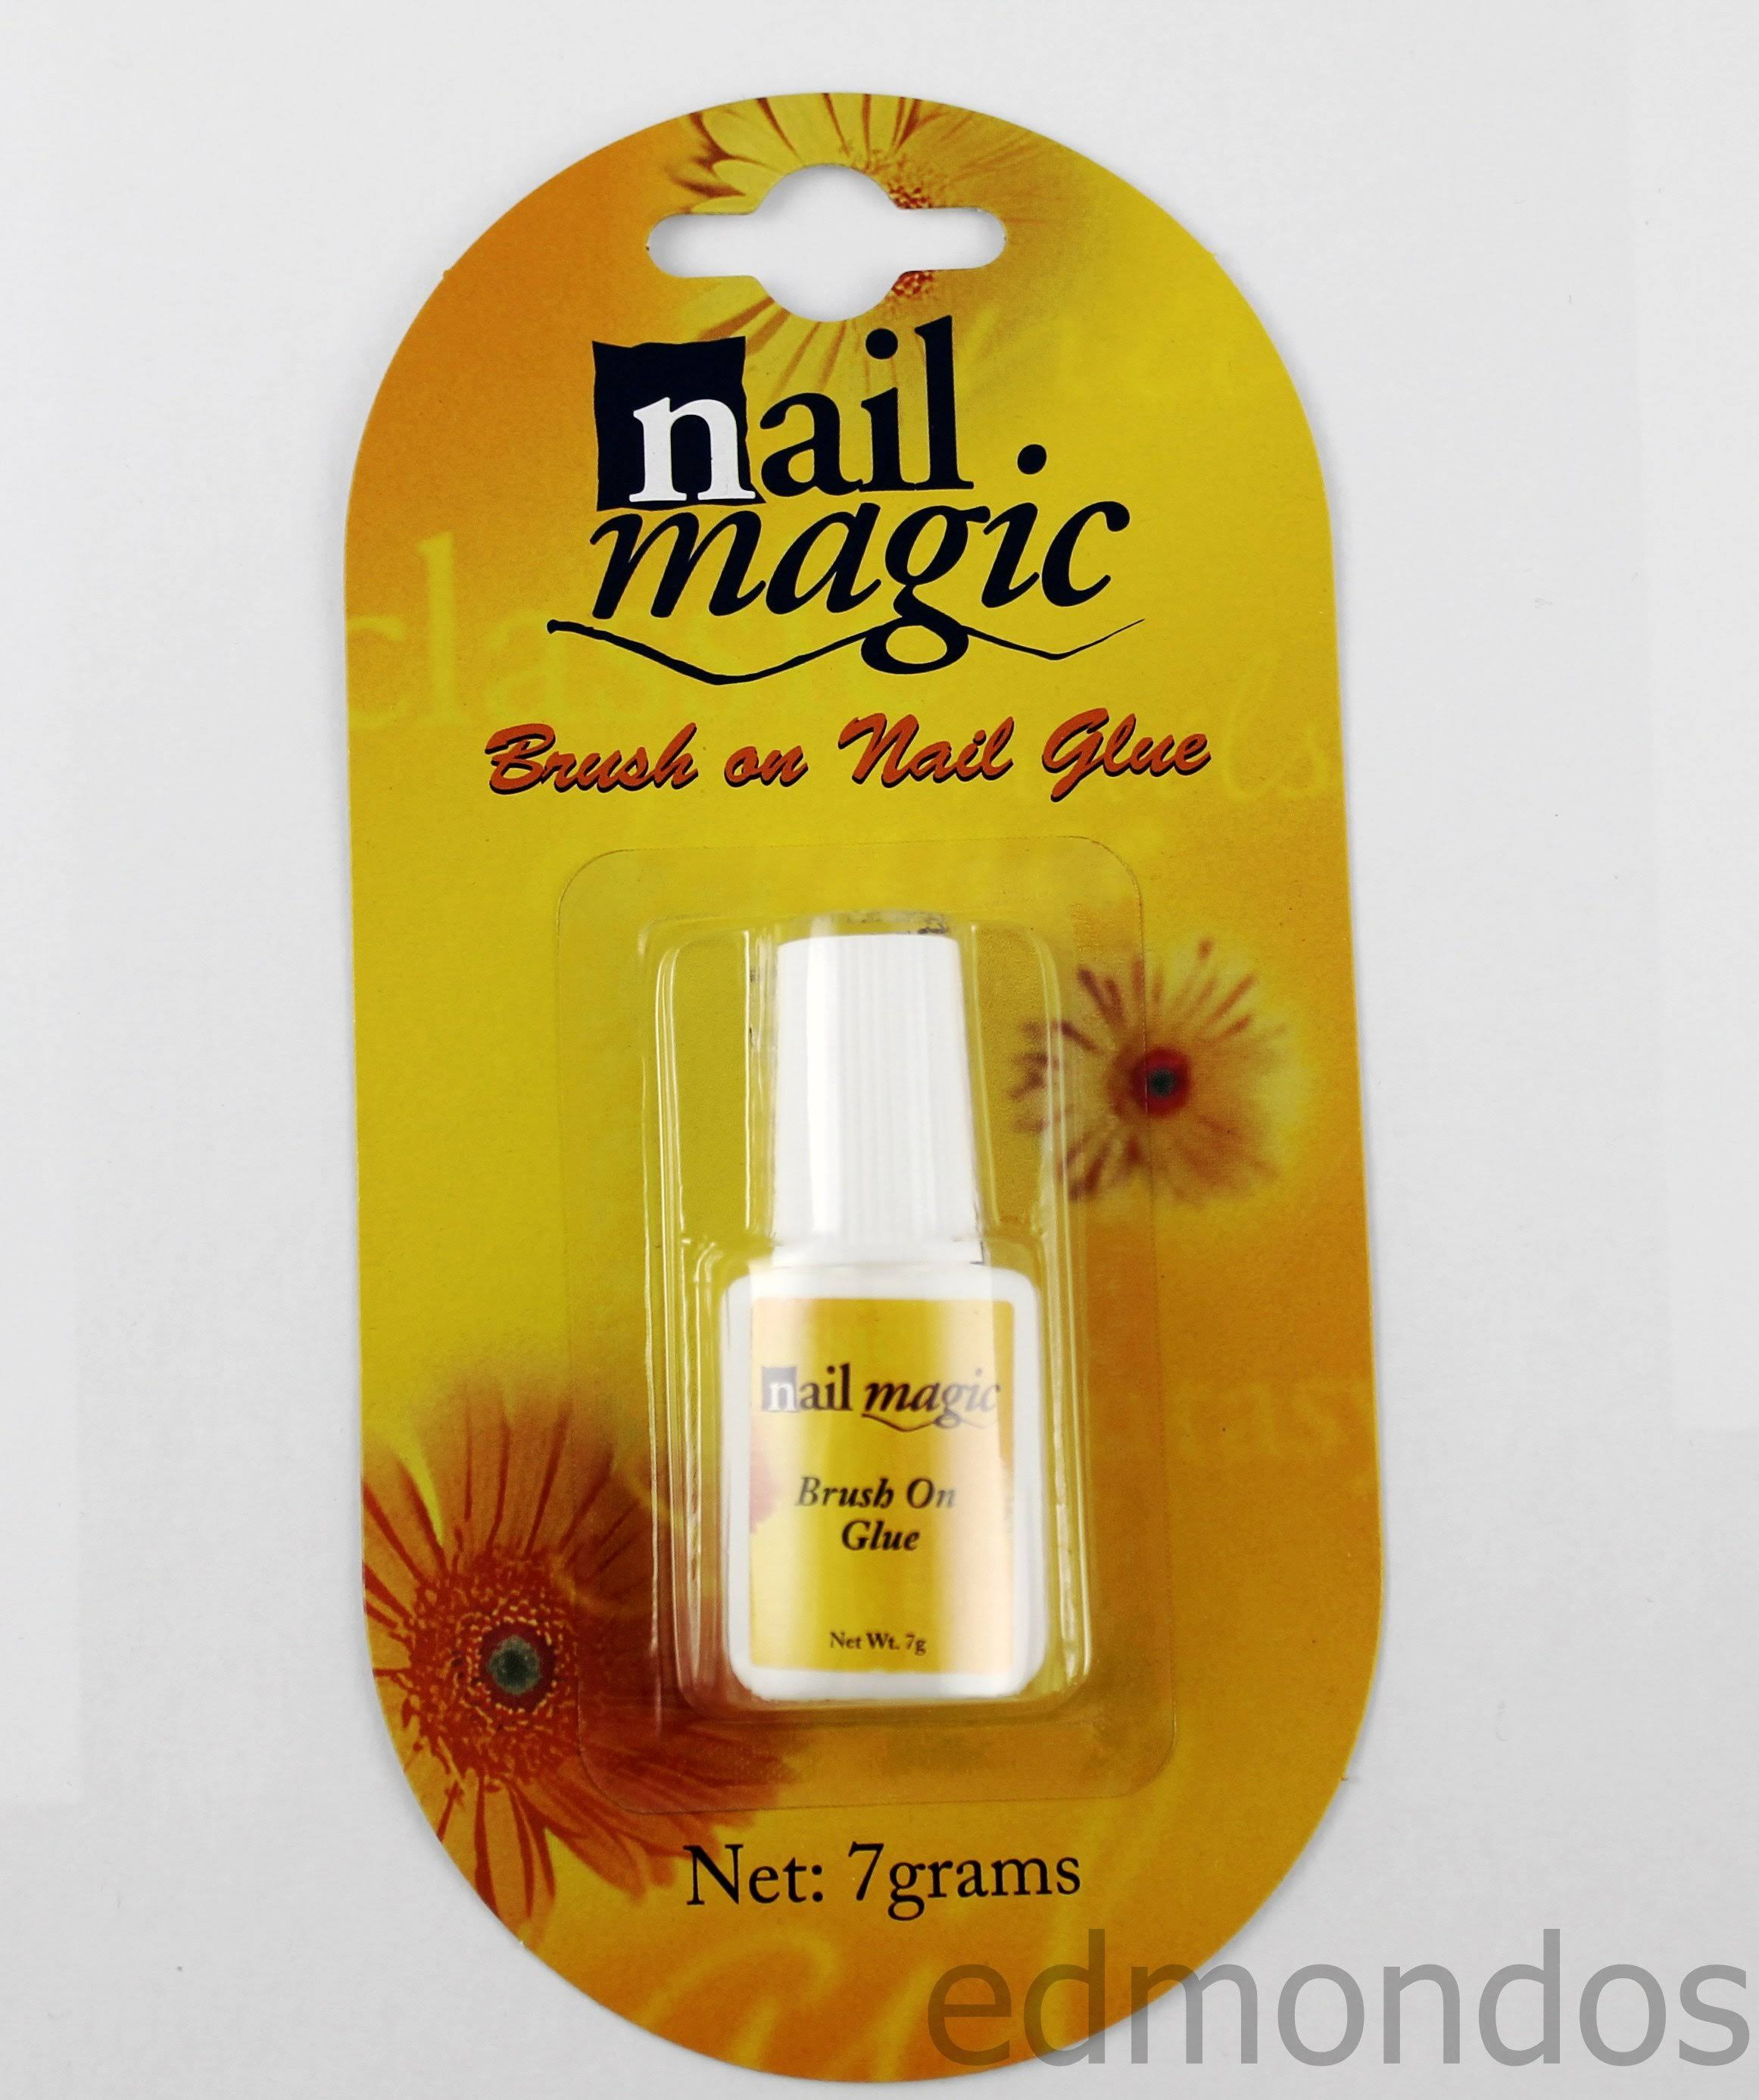 Nail Magic Brush on Glue - 7g